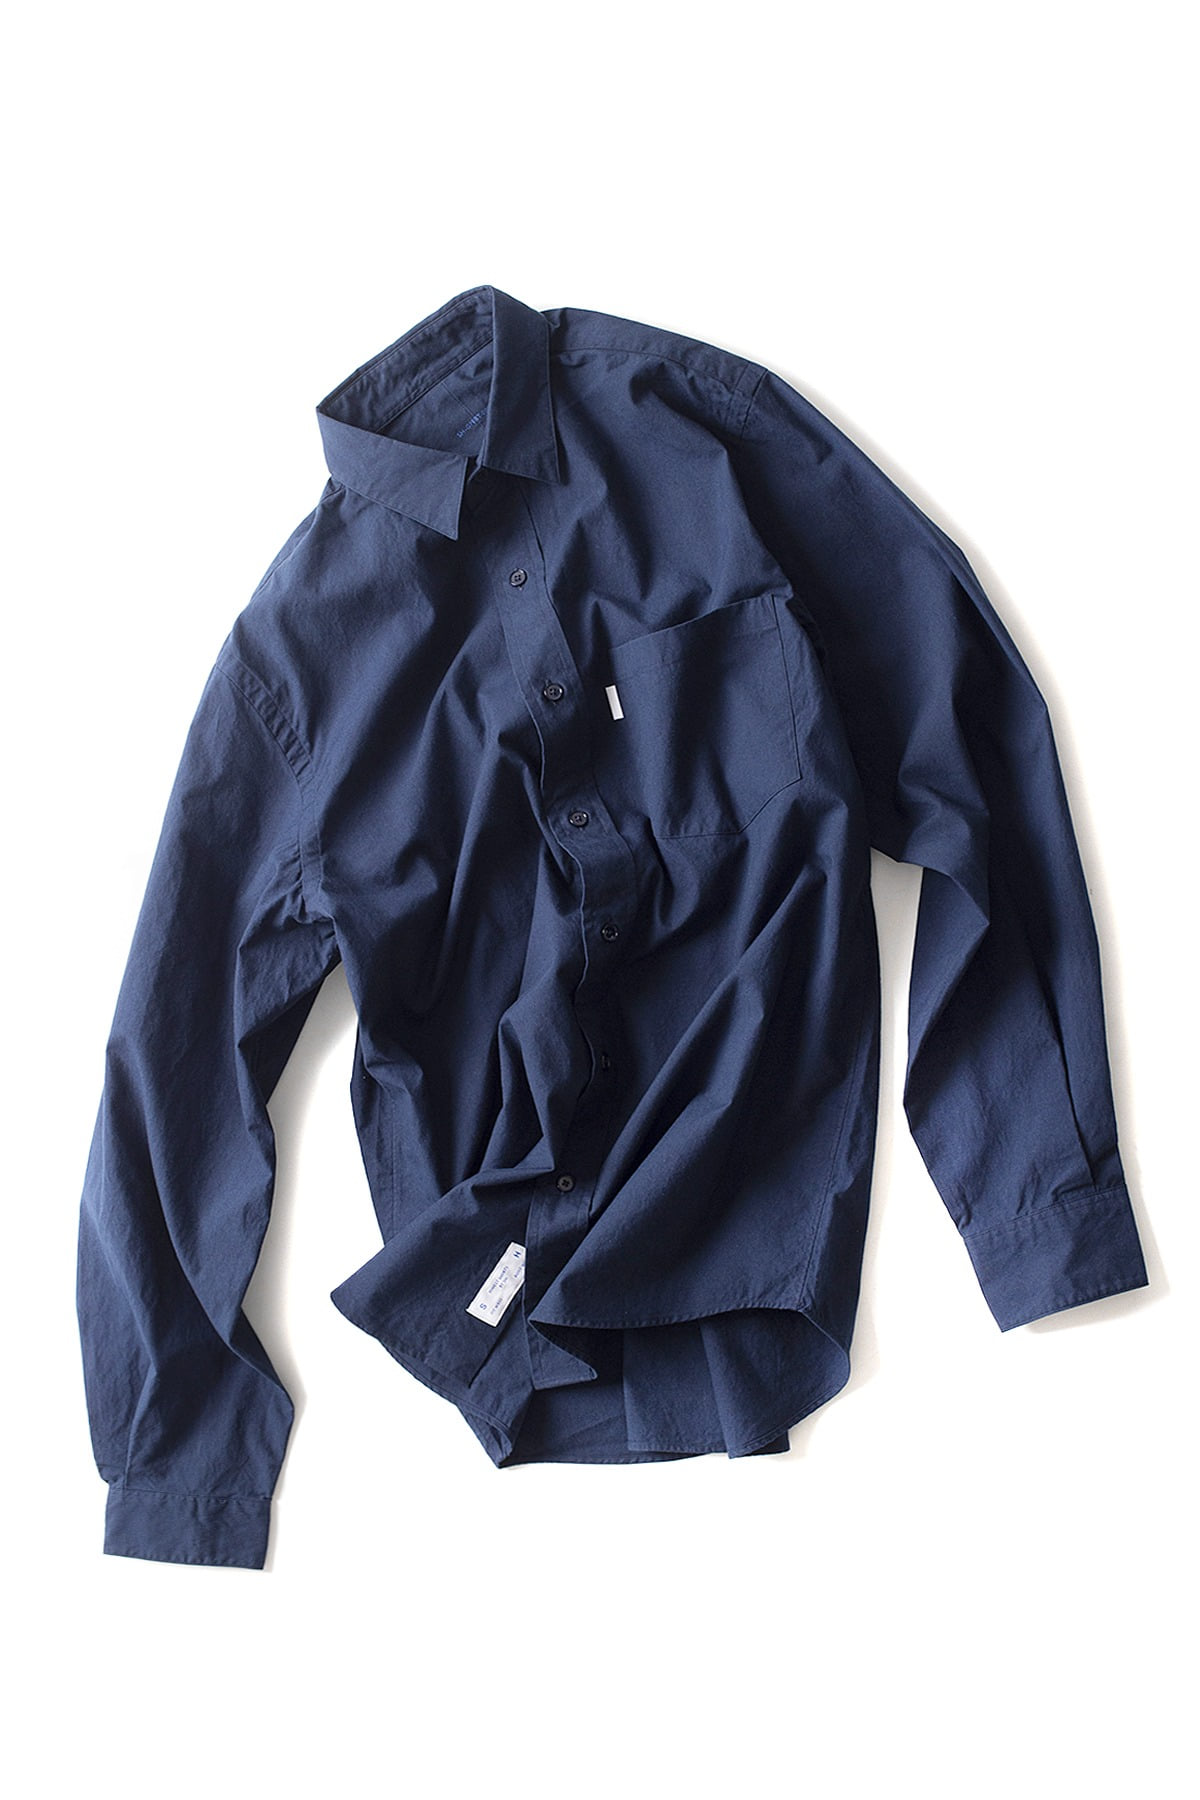 S H : Regular Collar Shirt (Navy)